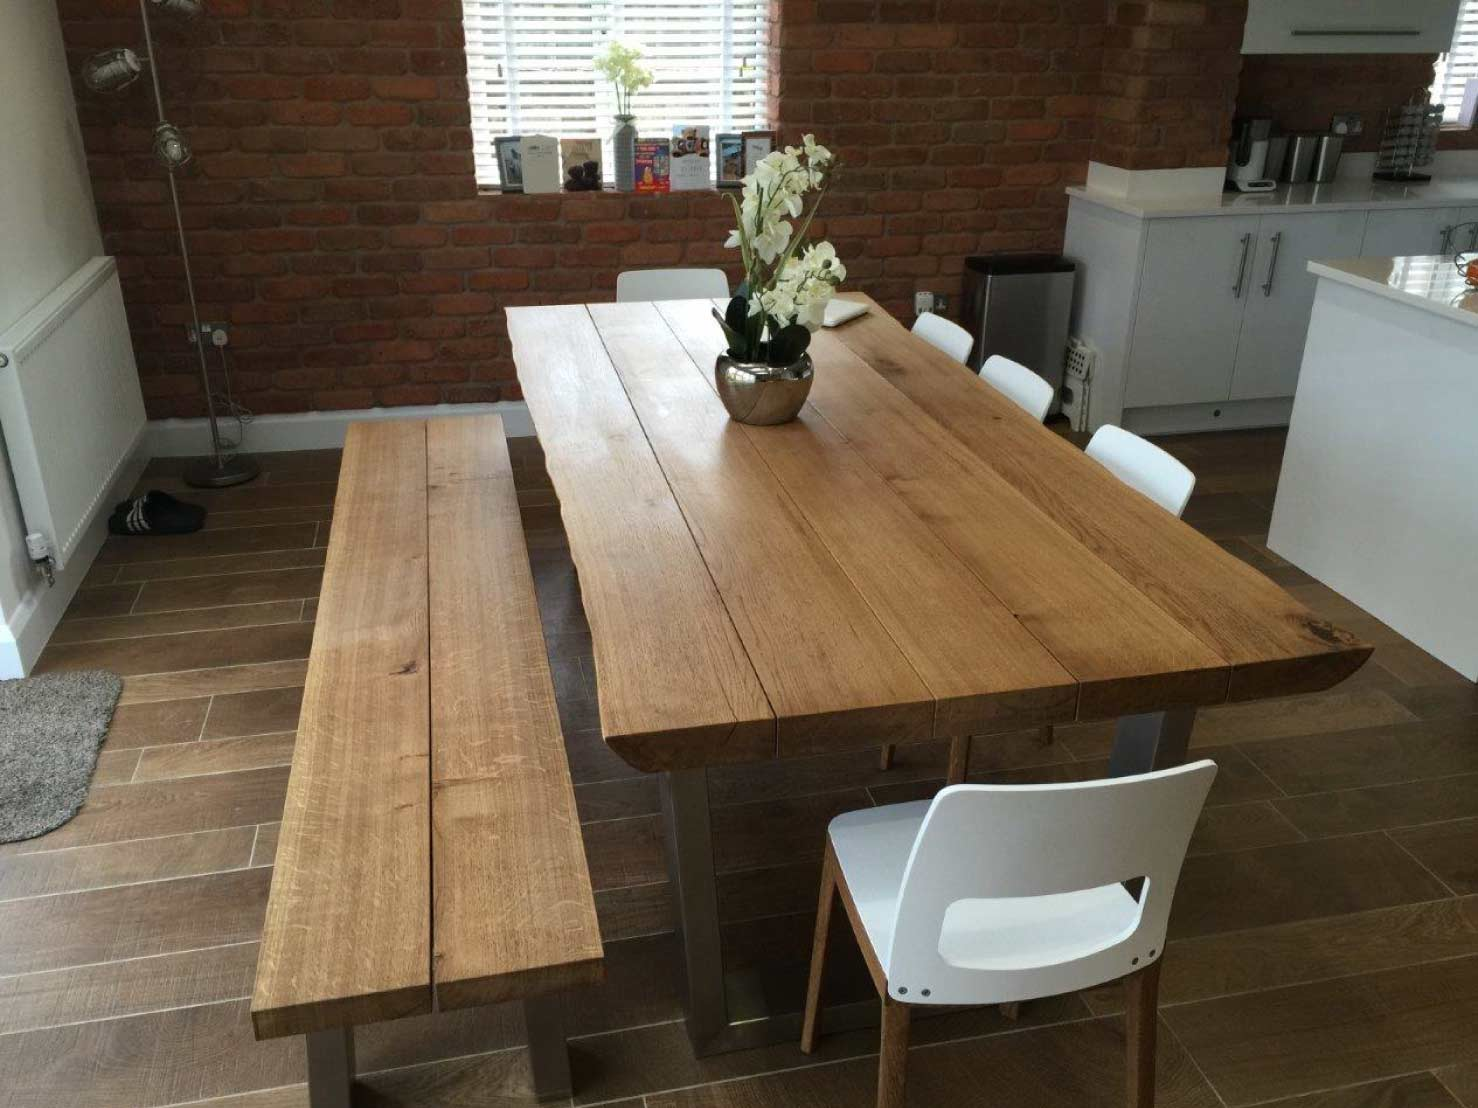 oak-dining-table-sets-from-abacus-tables-komodo-2.4m-matching-chairs-&-bench-project-341